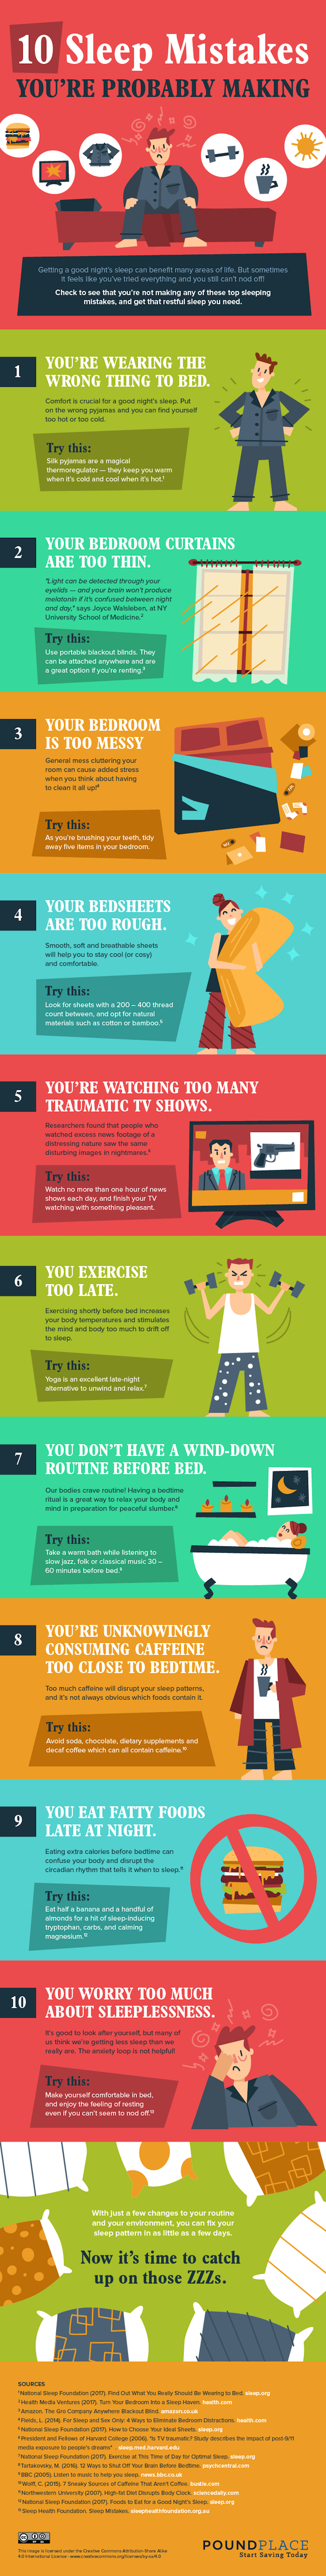 Infographic: 10 Sleep Mistakes You Might Be Making That Affect Your Slumber